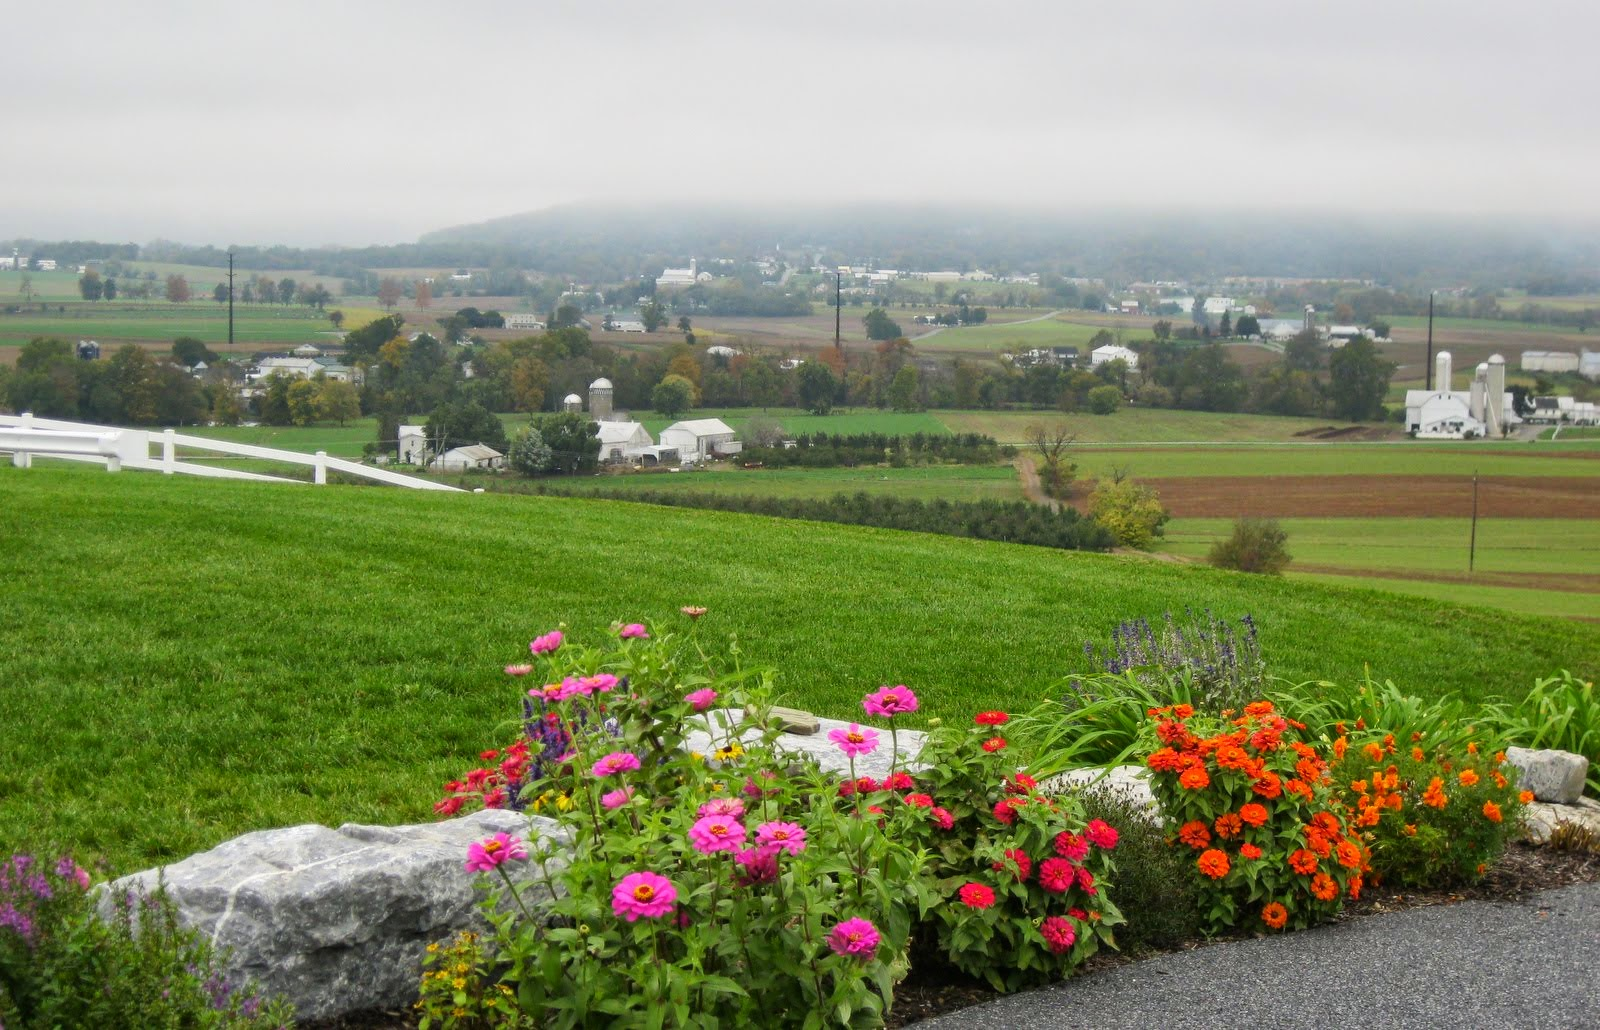 Another view of Ephrata from the top of the hill at Farm Crest